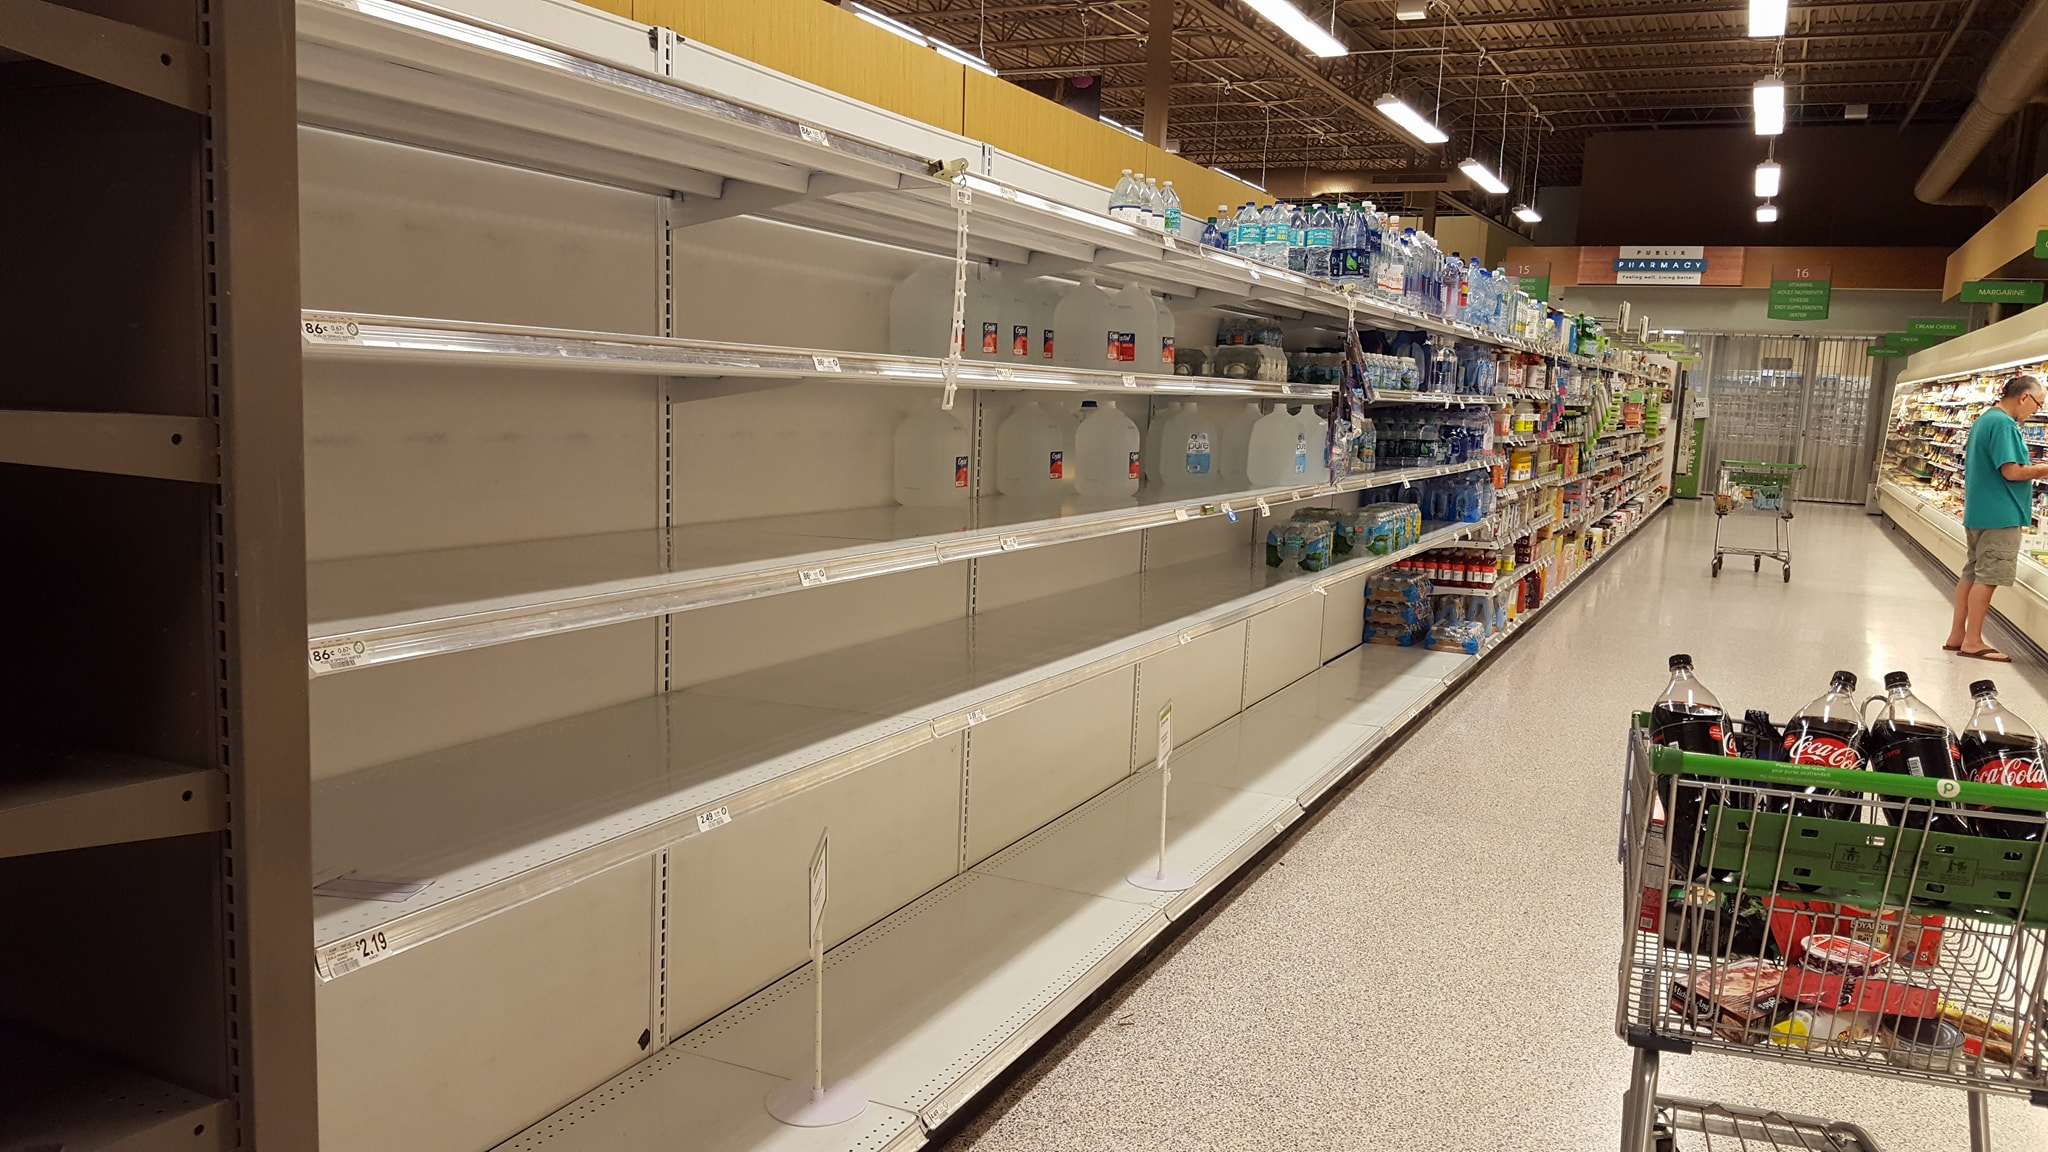 Bottled water shelves were bare Monday night at the Publix in Alachua. Courtesy Jen Webb.